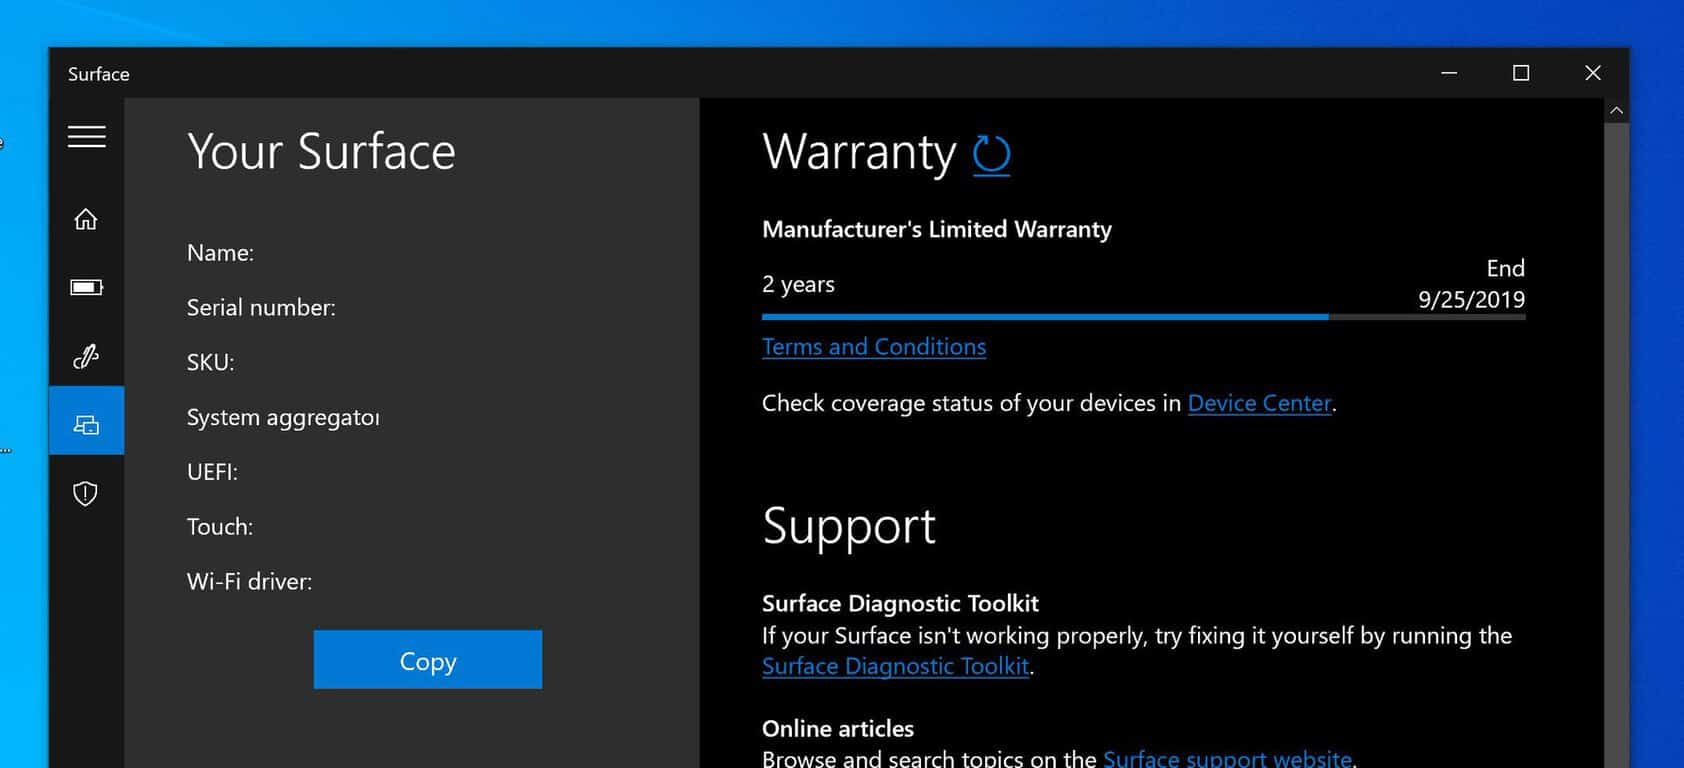 Windows 10 Surface App Now Tells Users When Their Warranty Ends